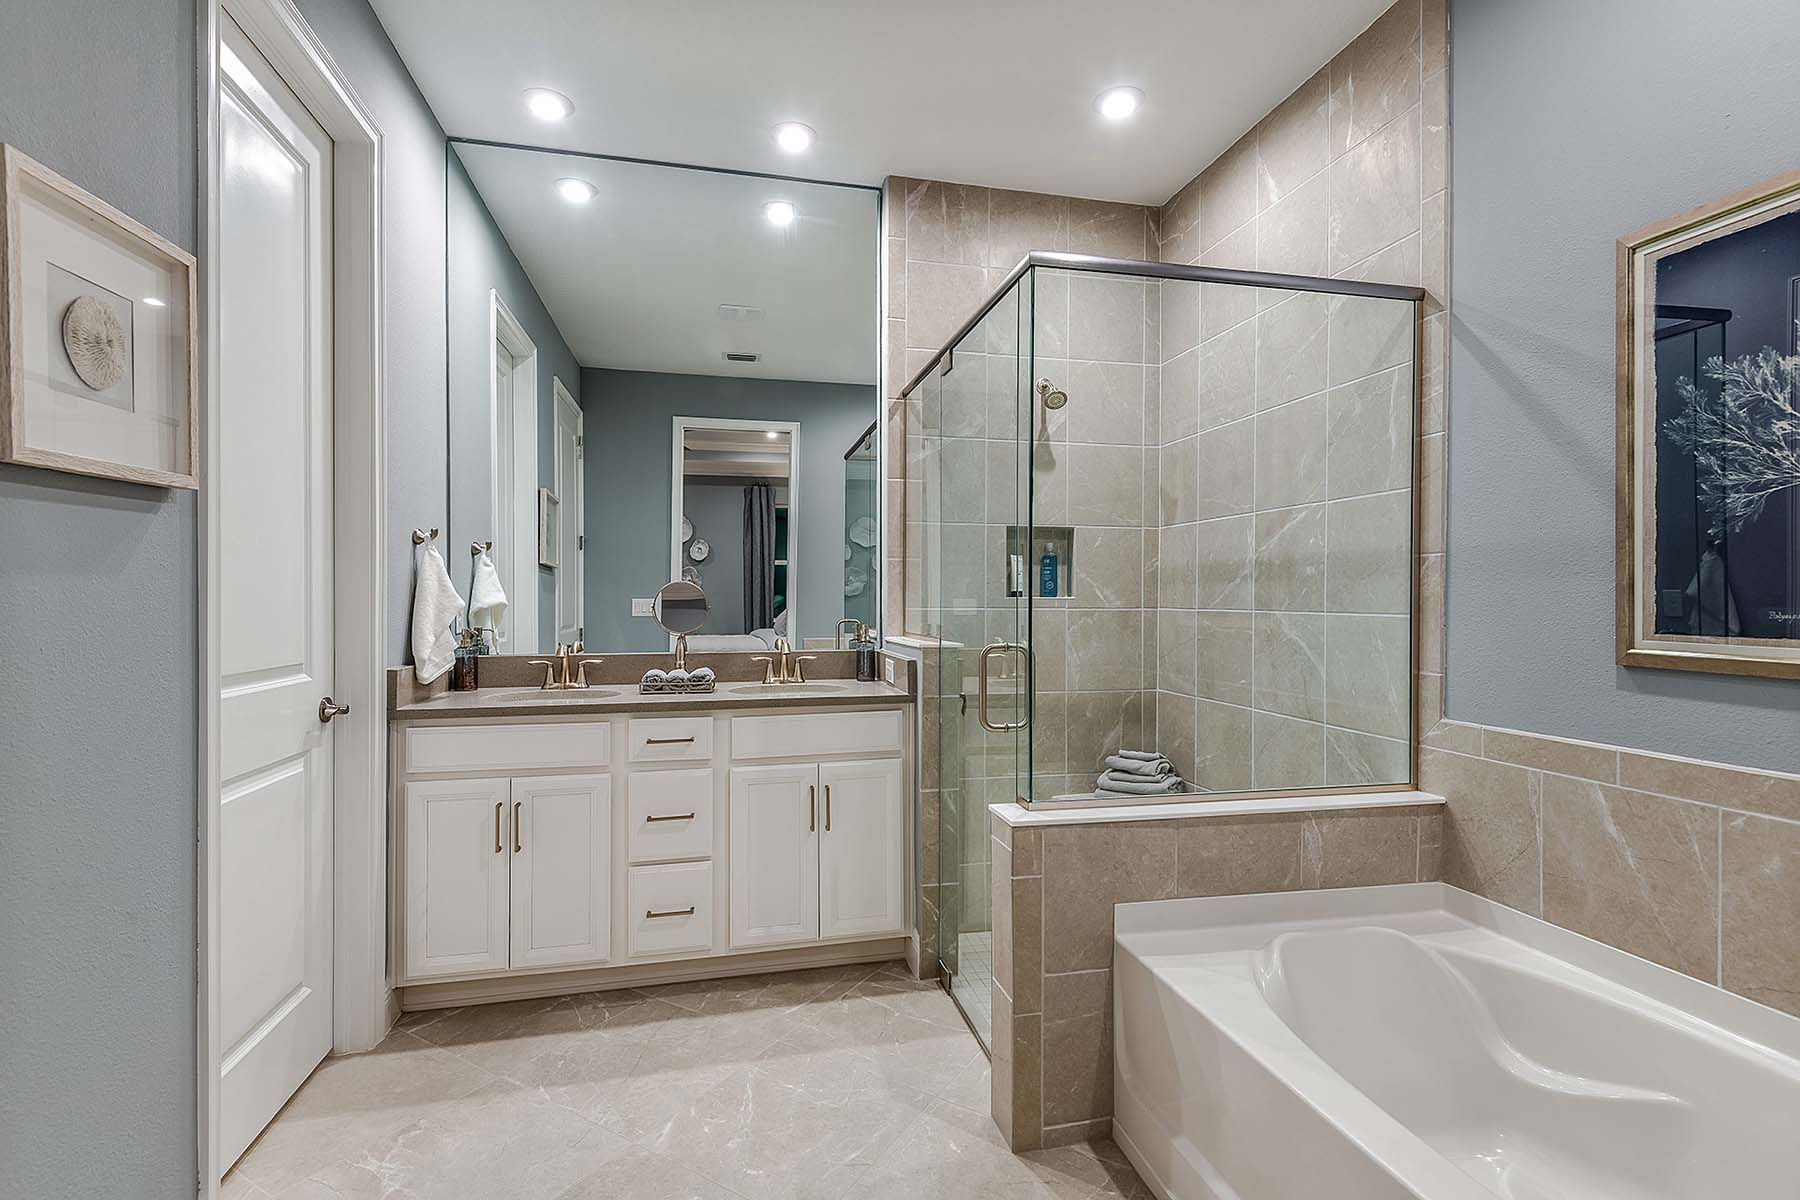 Oceana Plan Bathroom_Master Bath at Bonavie Cove in Fort Myers Florida by Mattamy Homes